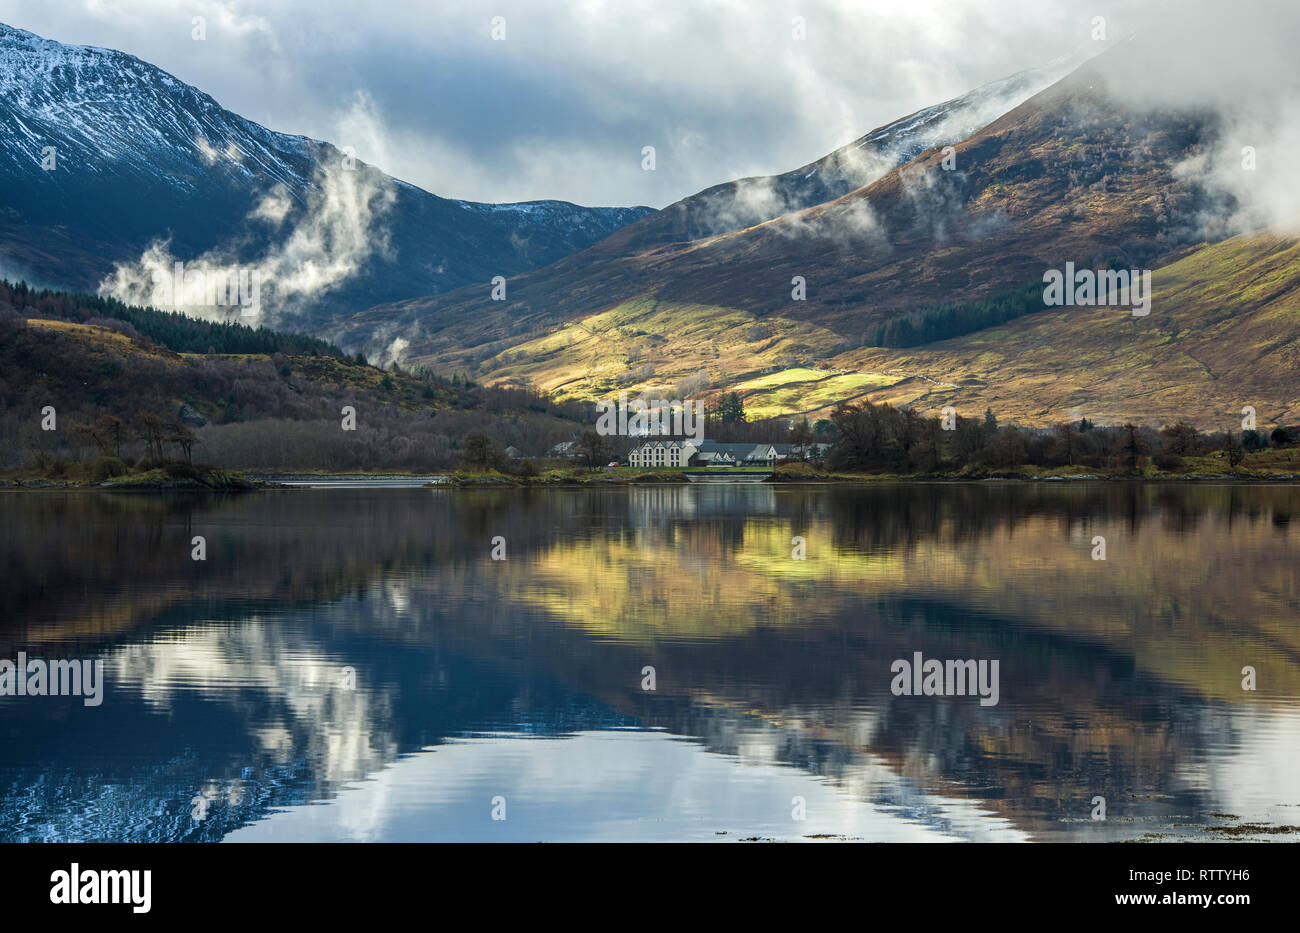 Clear reflections of the mountains and trees on Loch Leven, Glencoe, on a beautifully lit winter day in February. Stock Photo